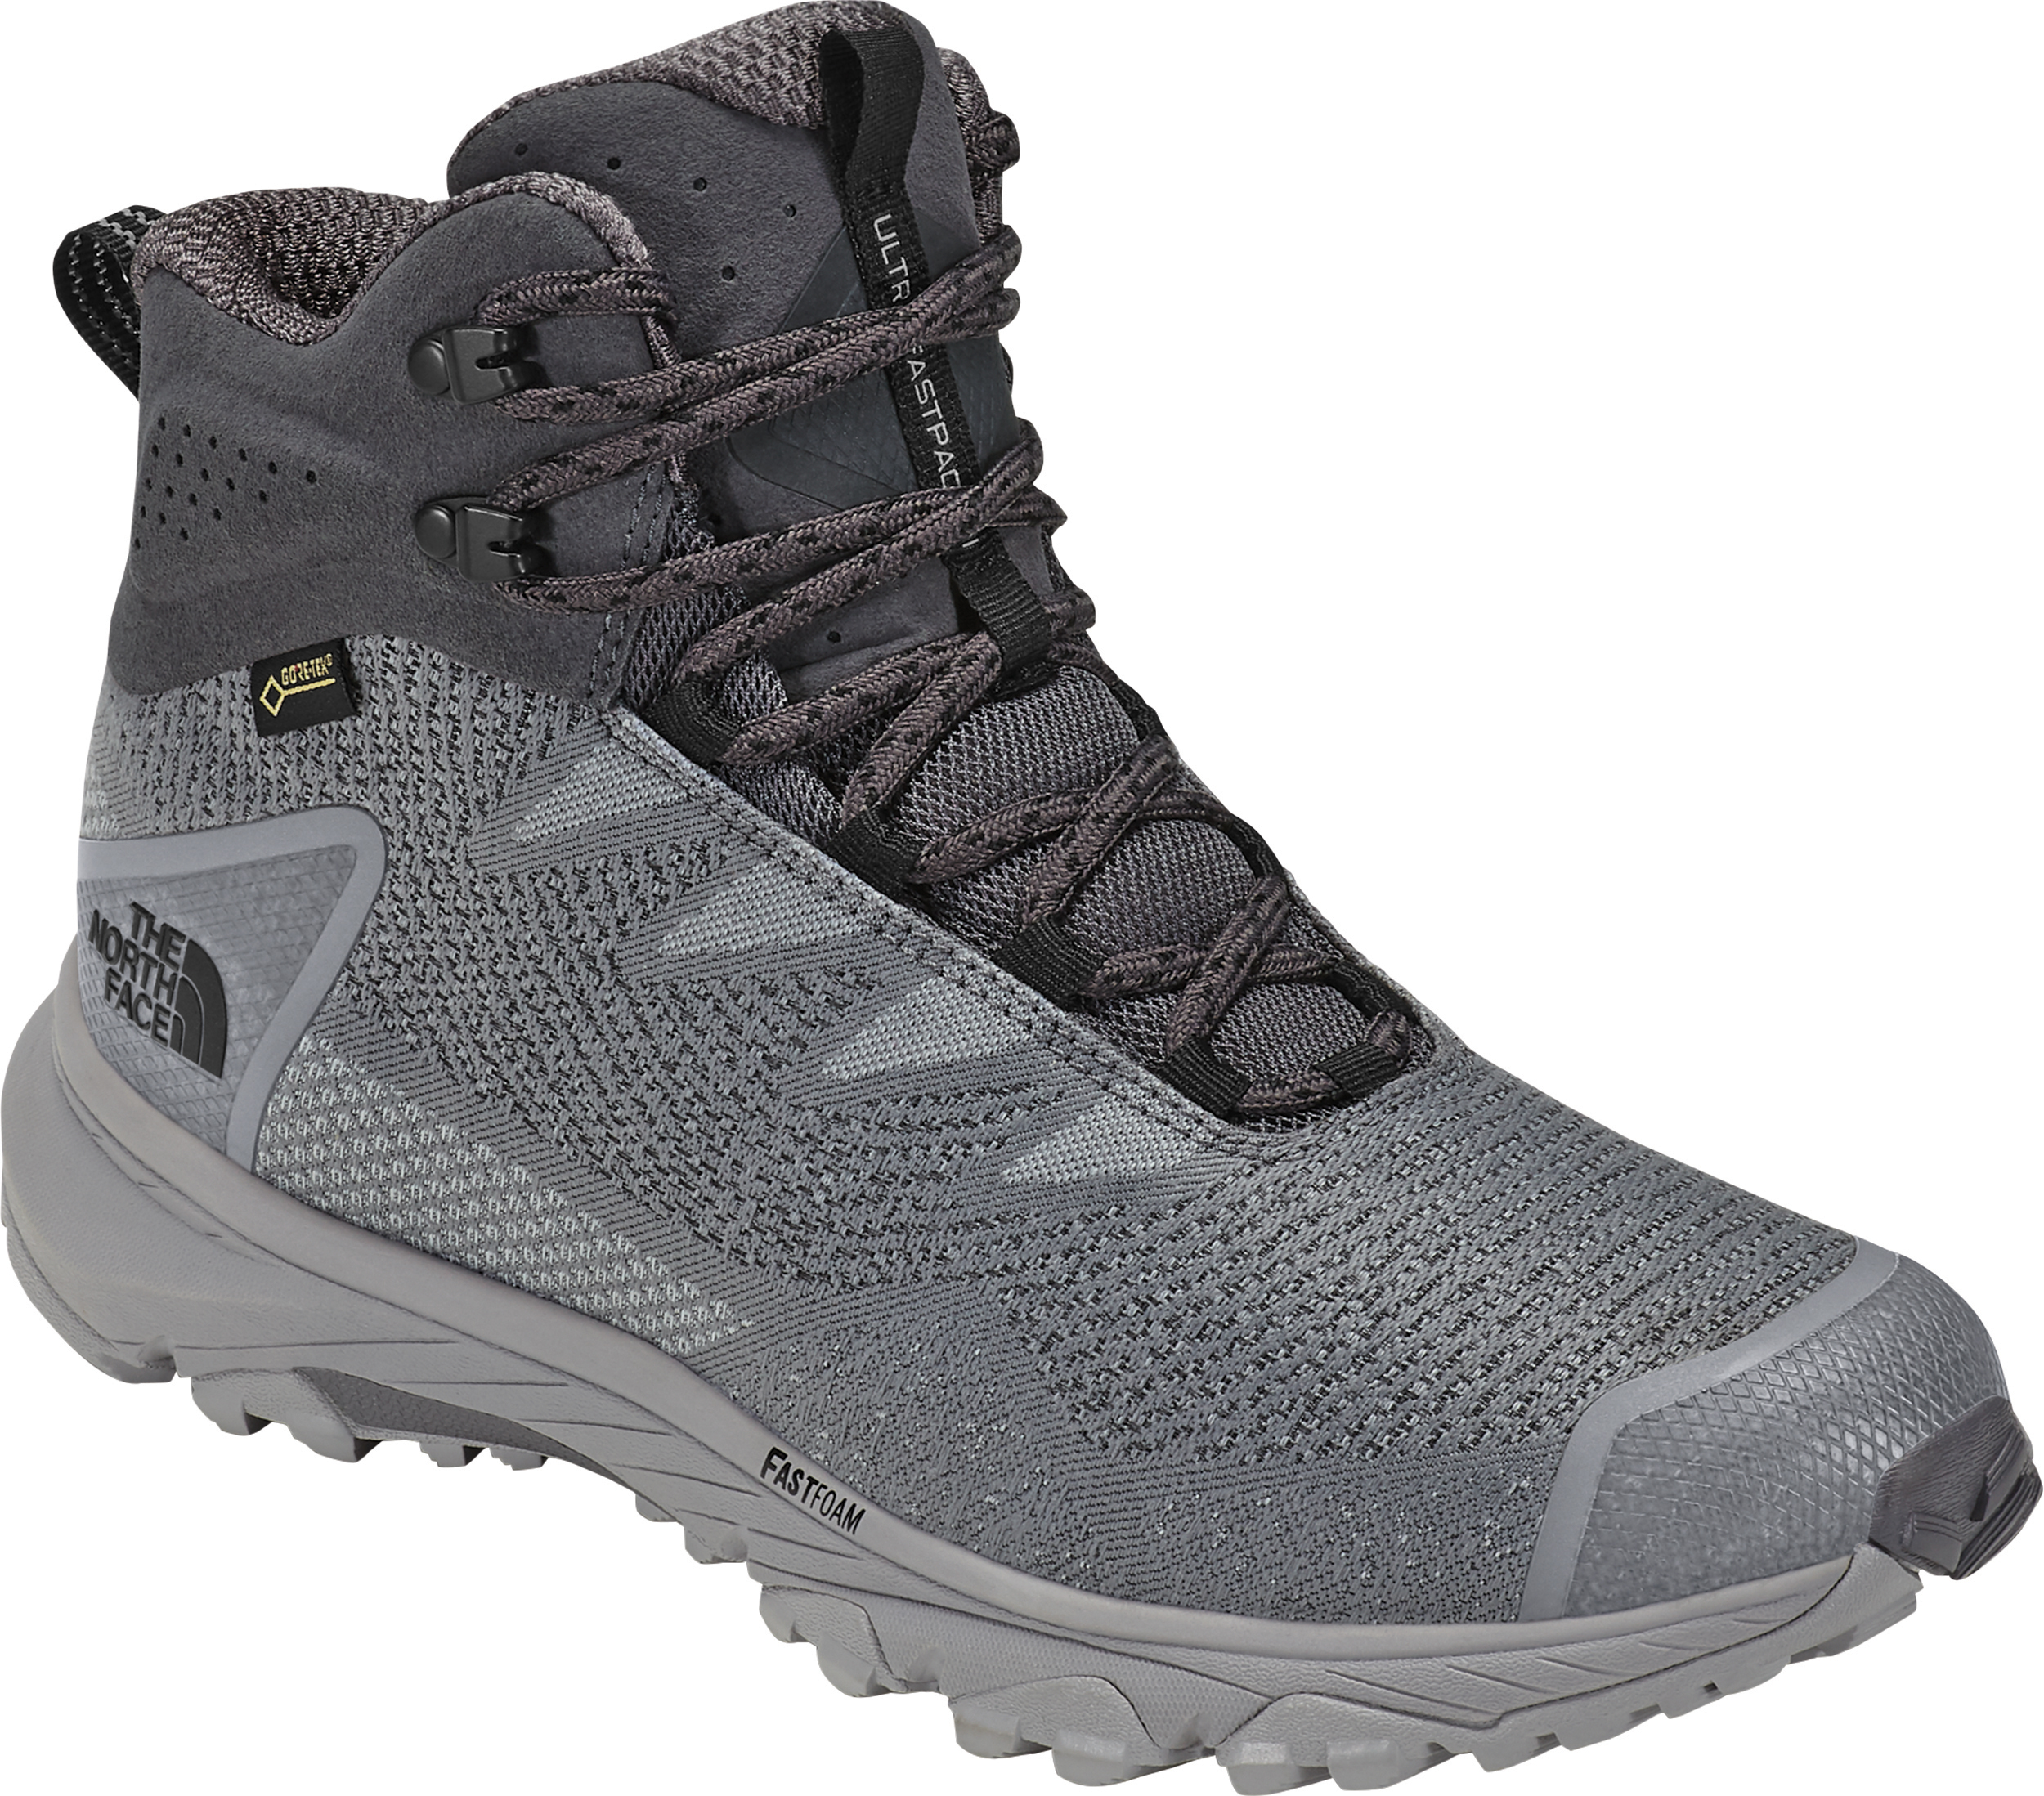 43468f38a The North Face Ultra Fastpack III Mid Gore-Tex Light Trail Shoes ...